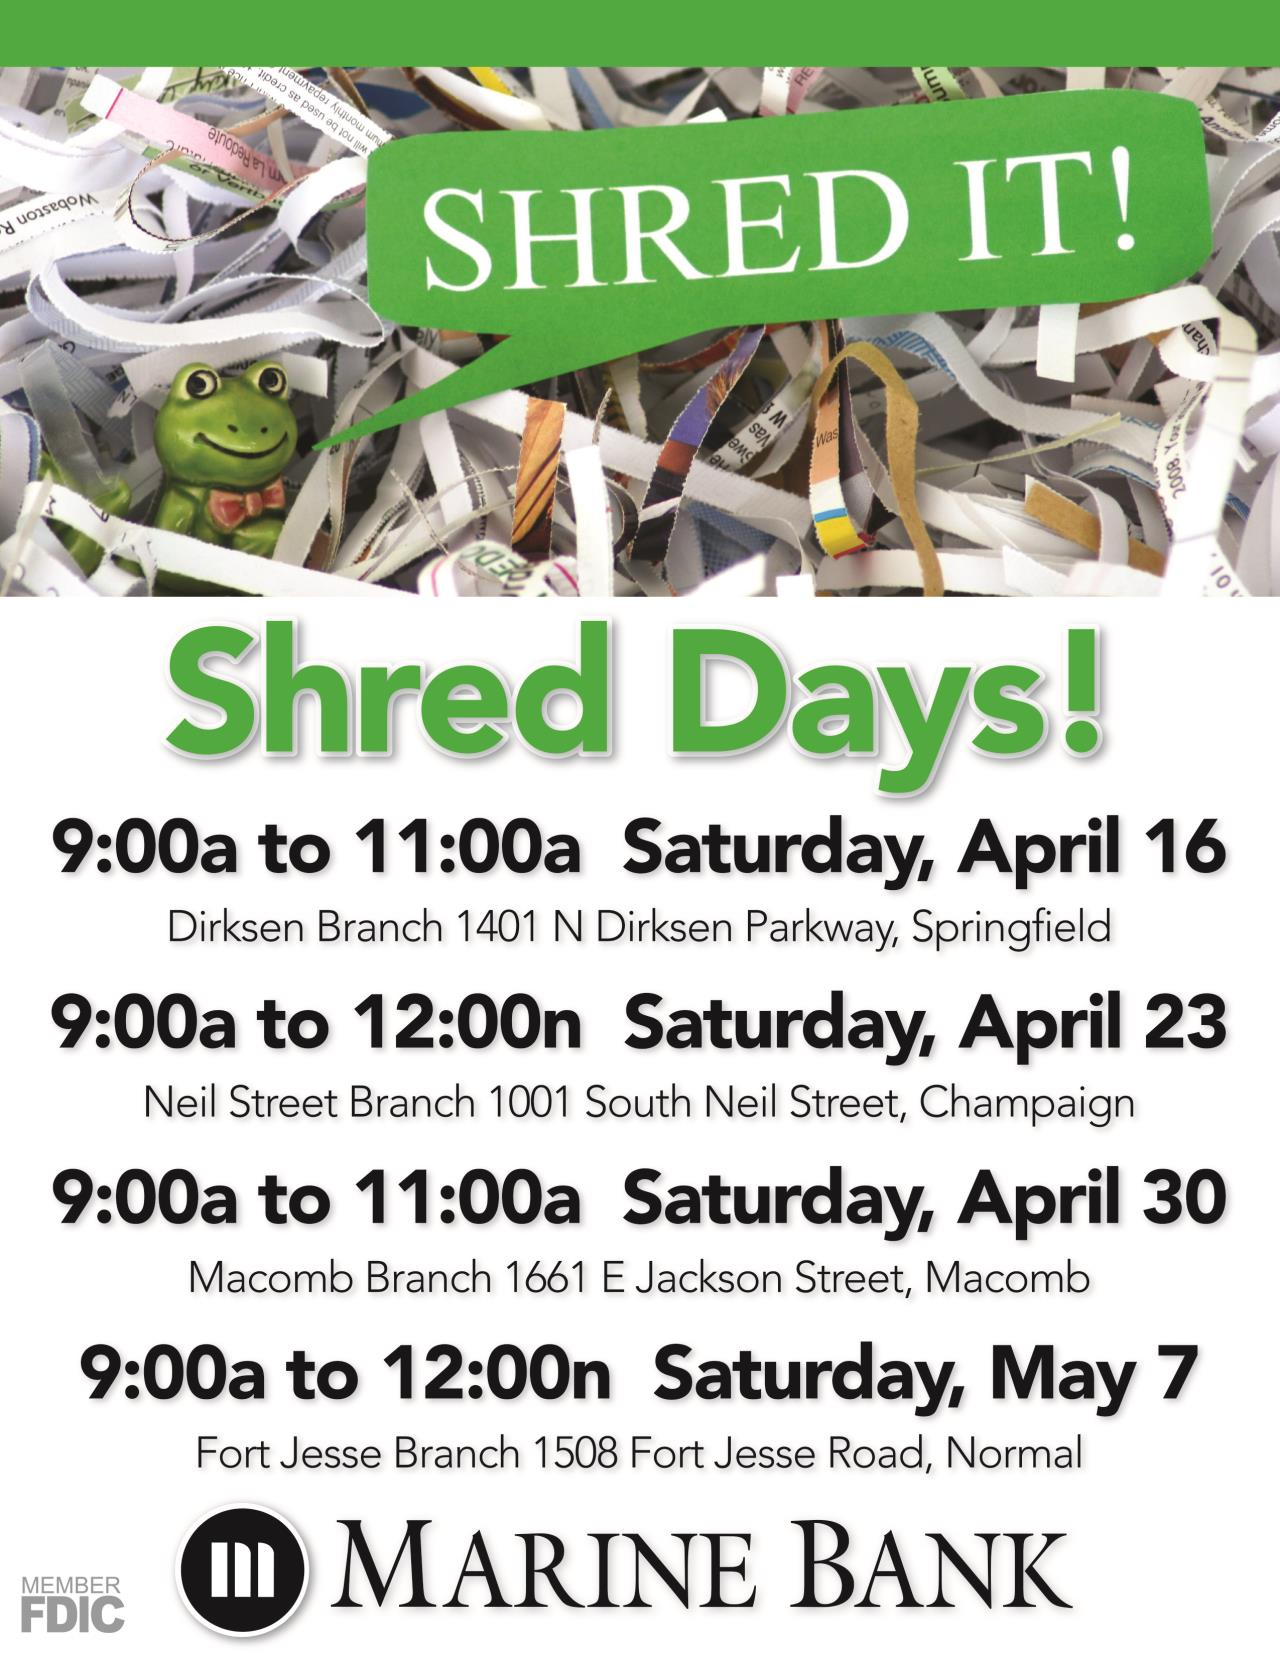 Shred Day General April16.jpg